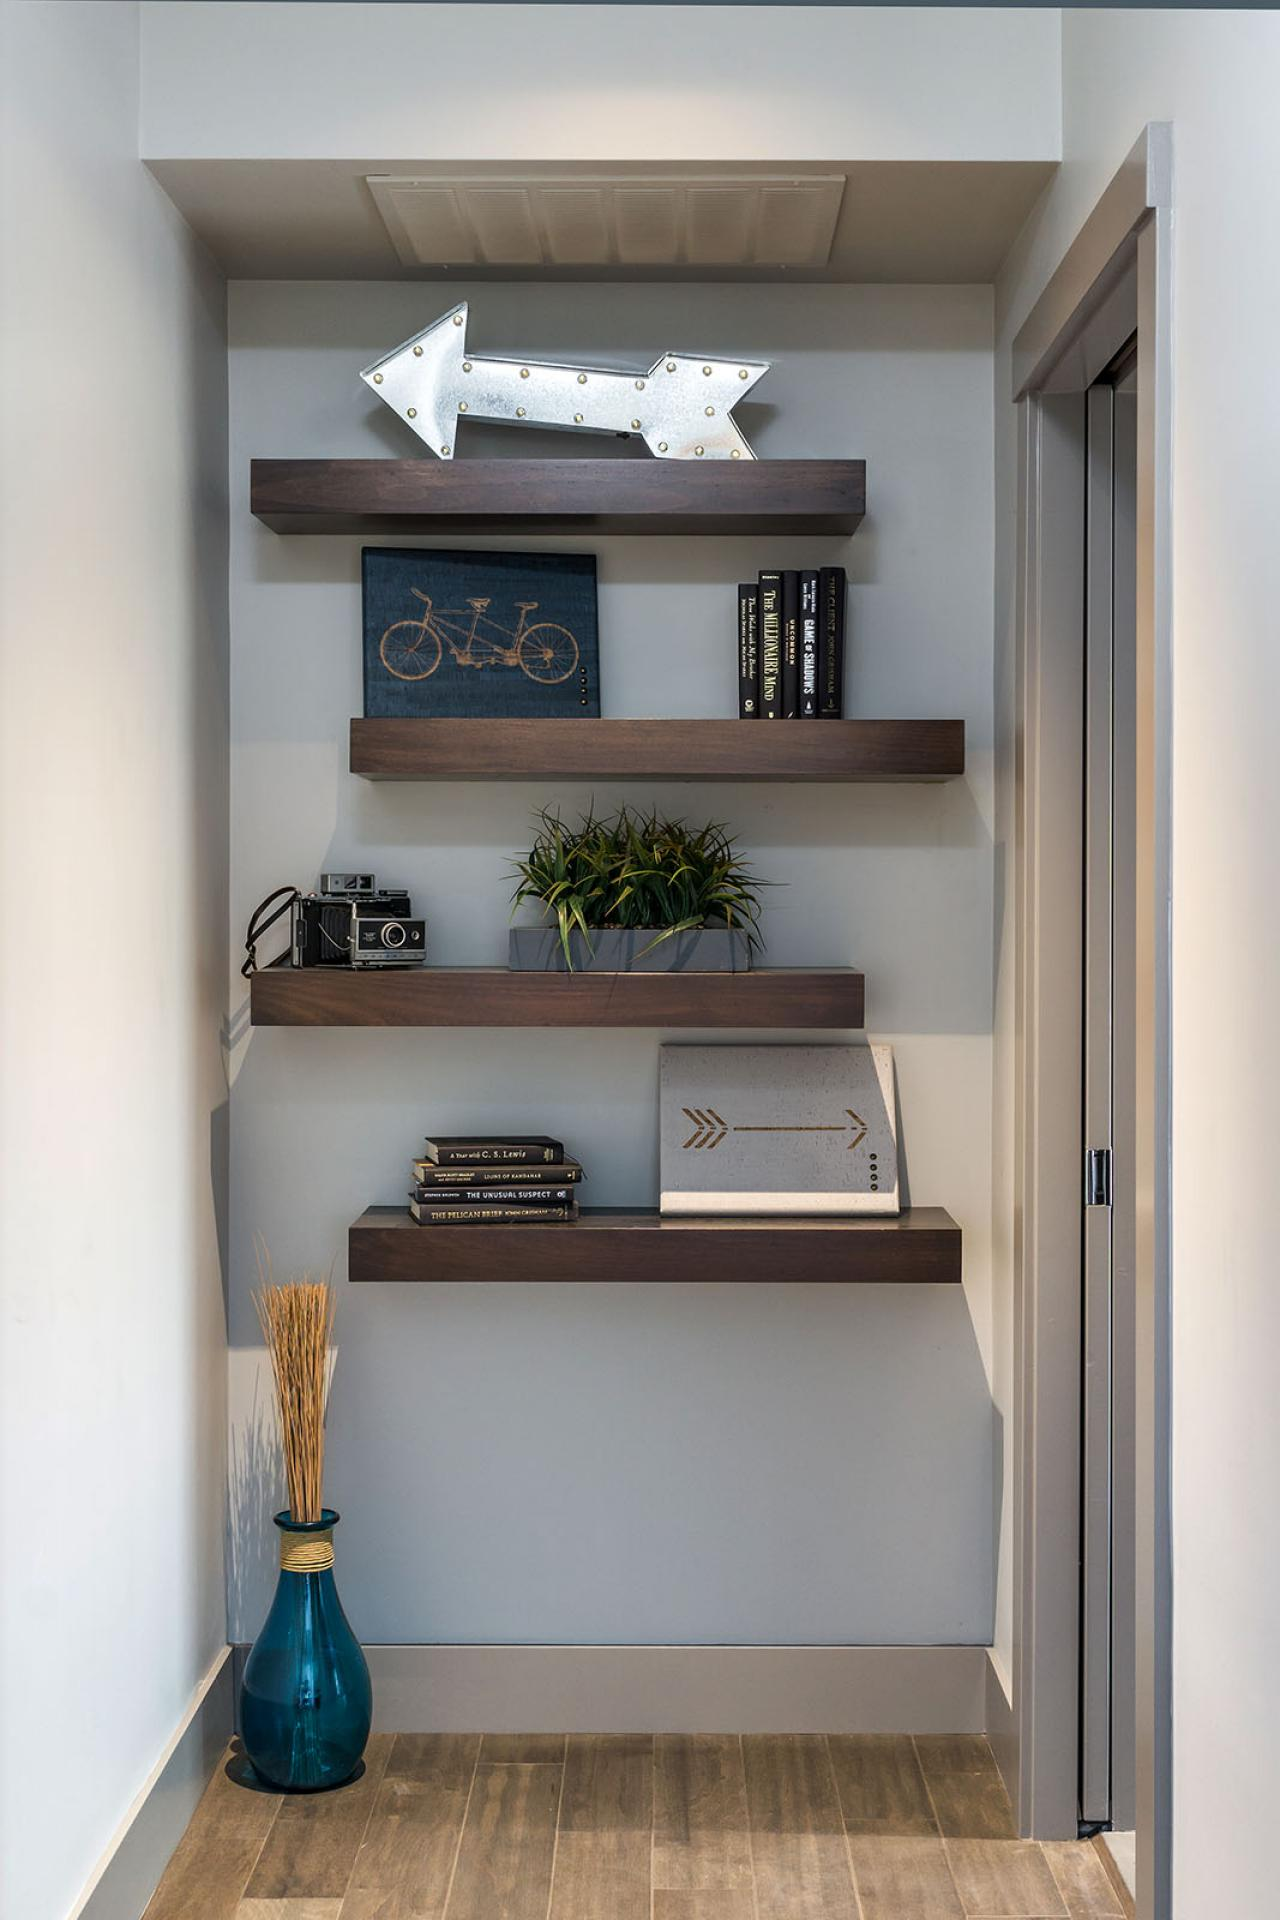 ways decorate with floating shelves decorating narrow white decorative contemporary hallway ikea book shelf vanity without sink self adhesive floor tiles concrete inch fireplace